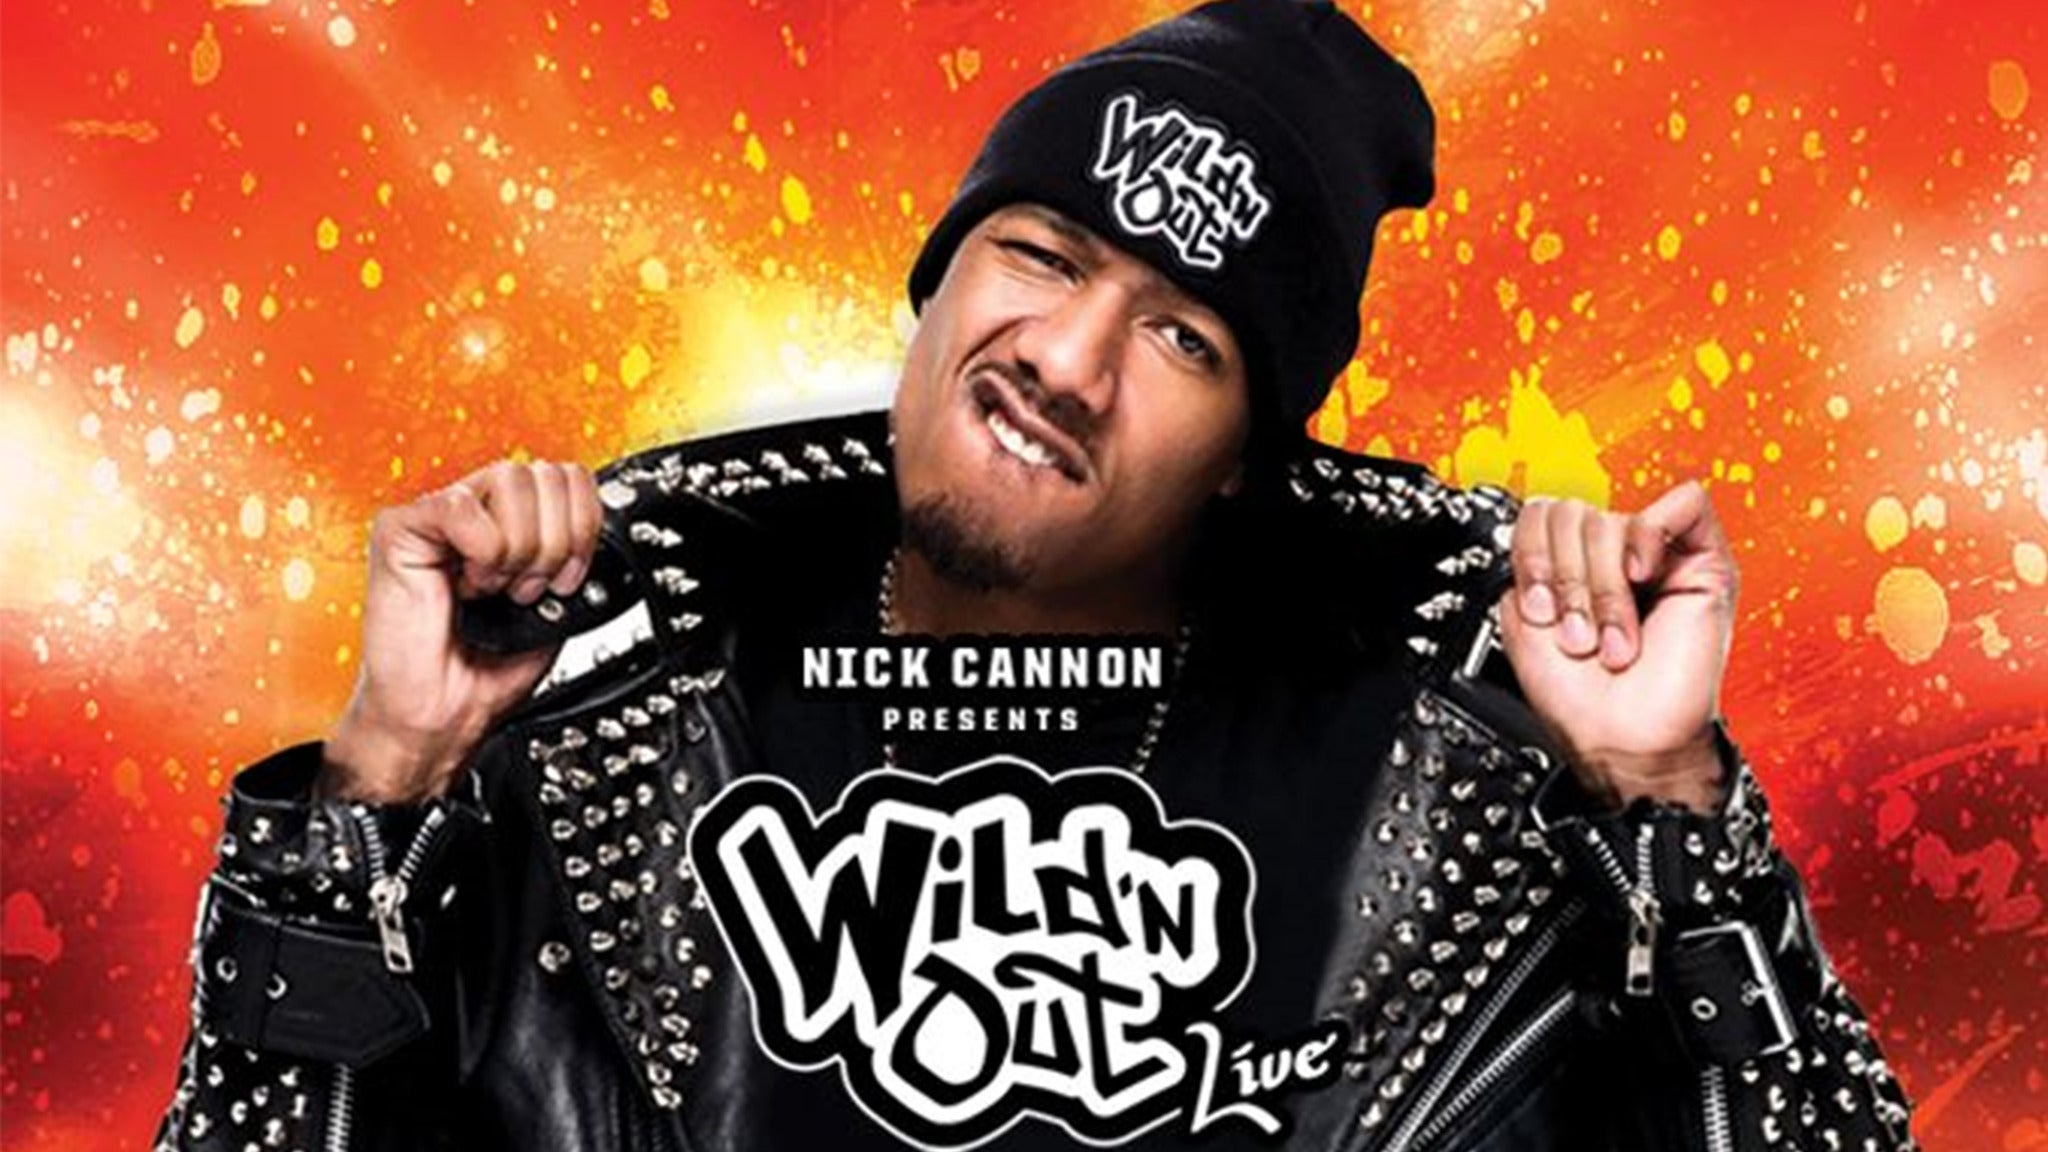 NICK CANNON PRESENTS: WILD 'N OUT LIVE at Golden 1 Center in